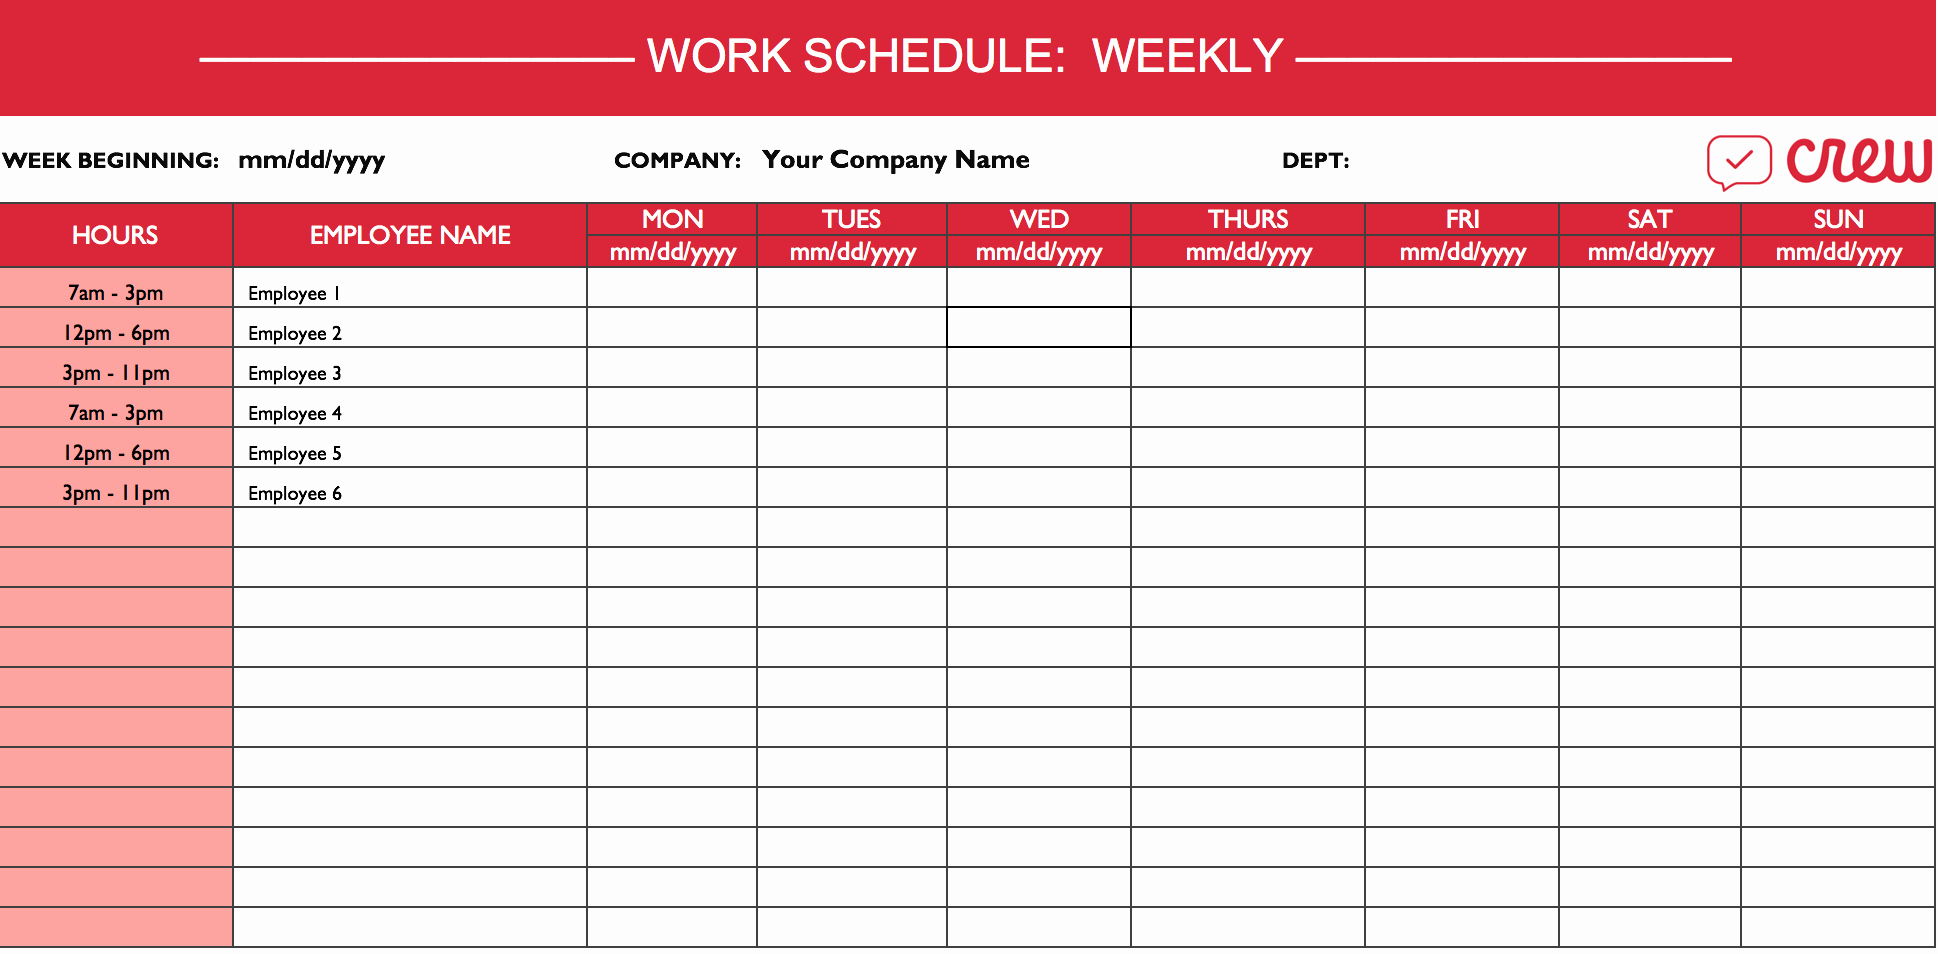 Weekly Time Schedule Template Excel New Weekly Work Schedule Template I Crew